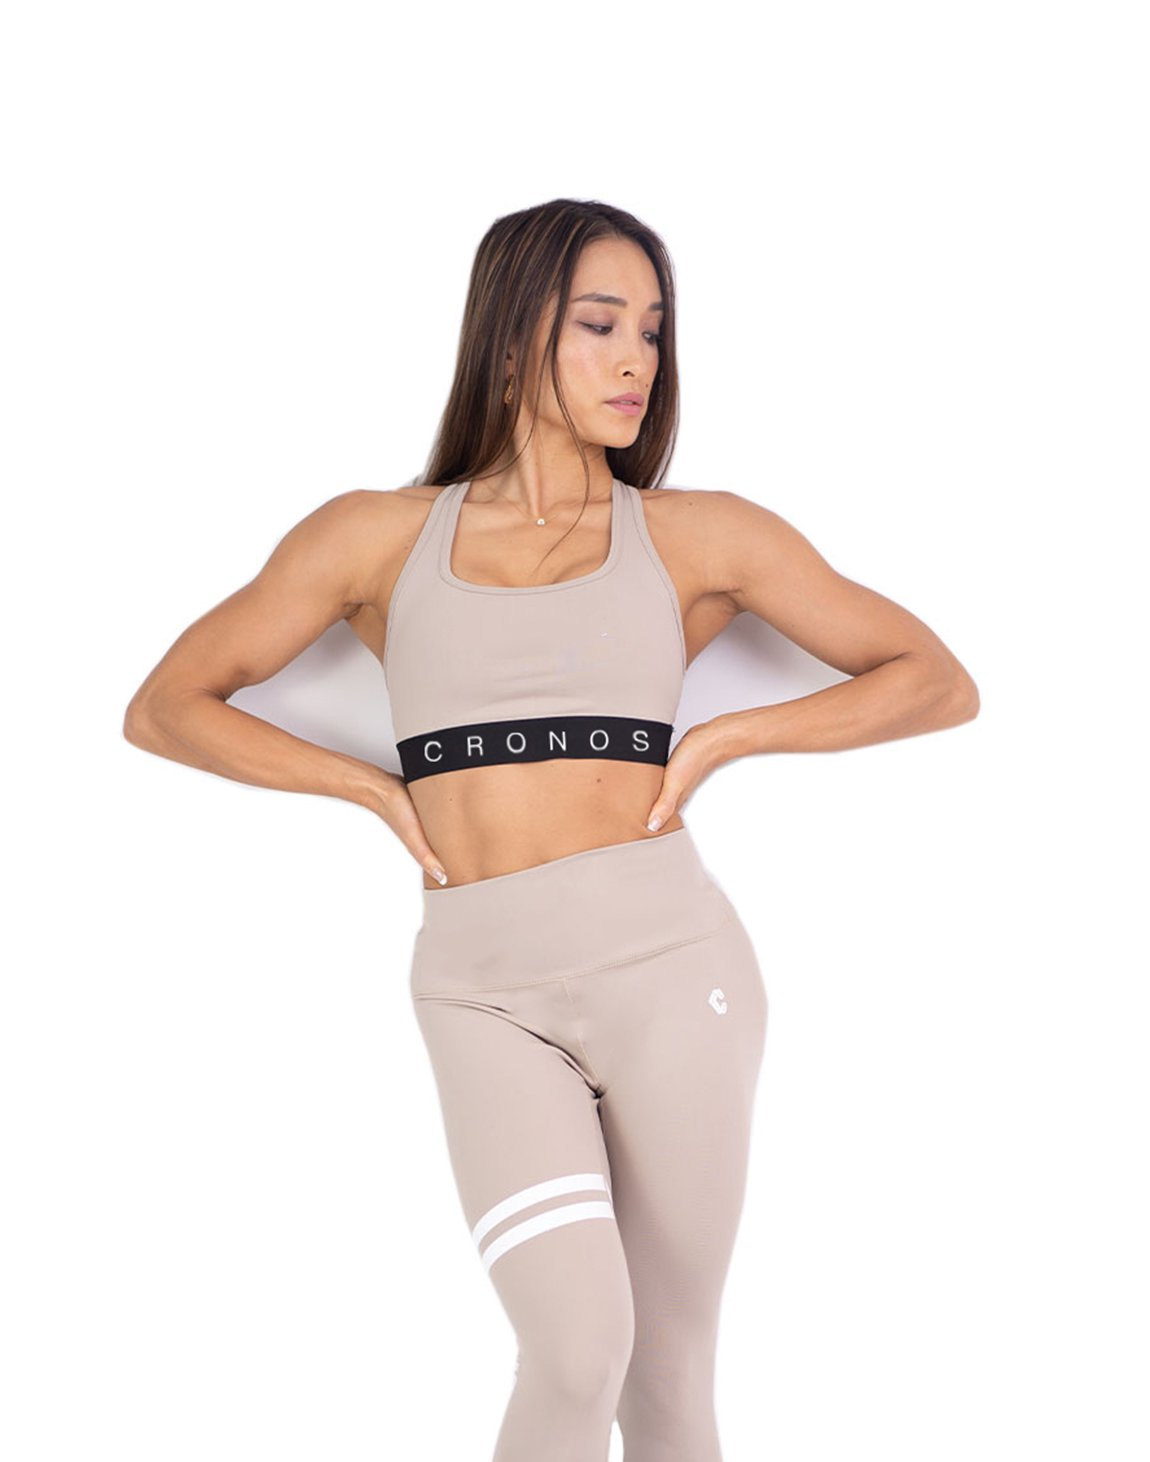 <img class='new_mark_img1' src='https://img.shop-pro.jp/img/new/icons1.gif' style='border:none;display:inline;margin:0px;padding:0px;width:auto;' />CRONOS LOGO SPORTS BRA  BEIGE